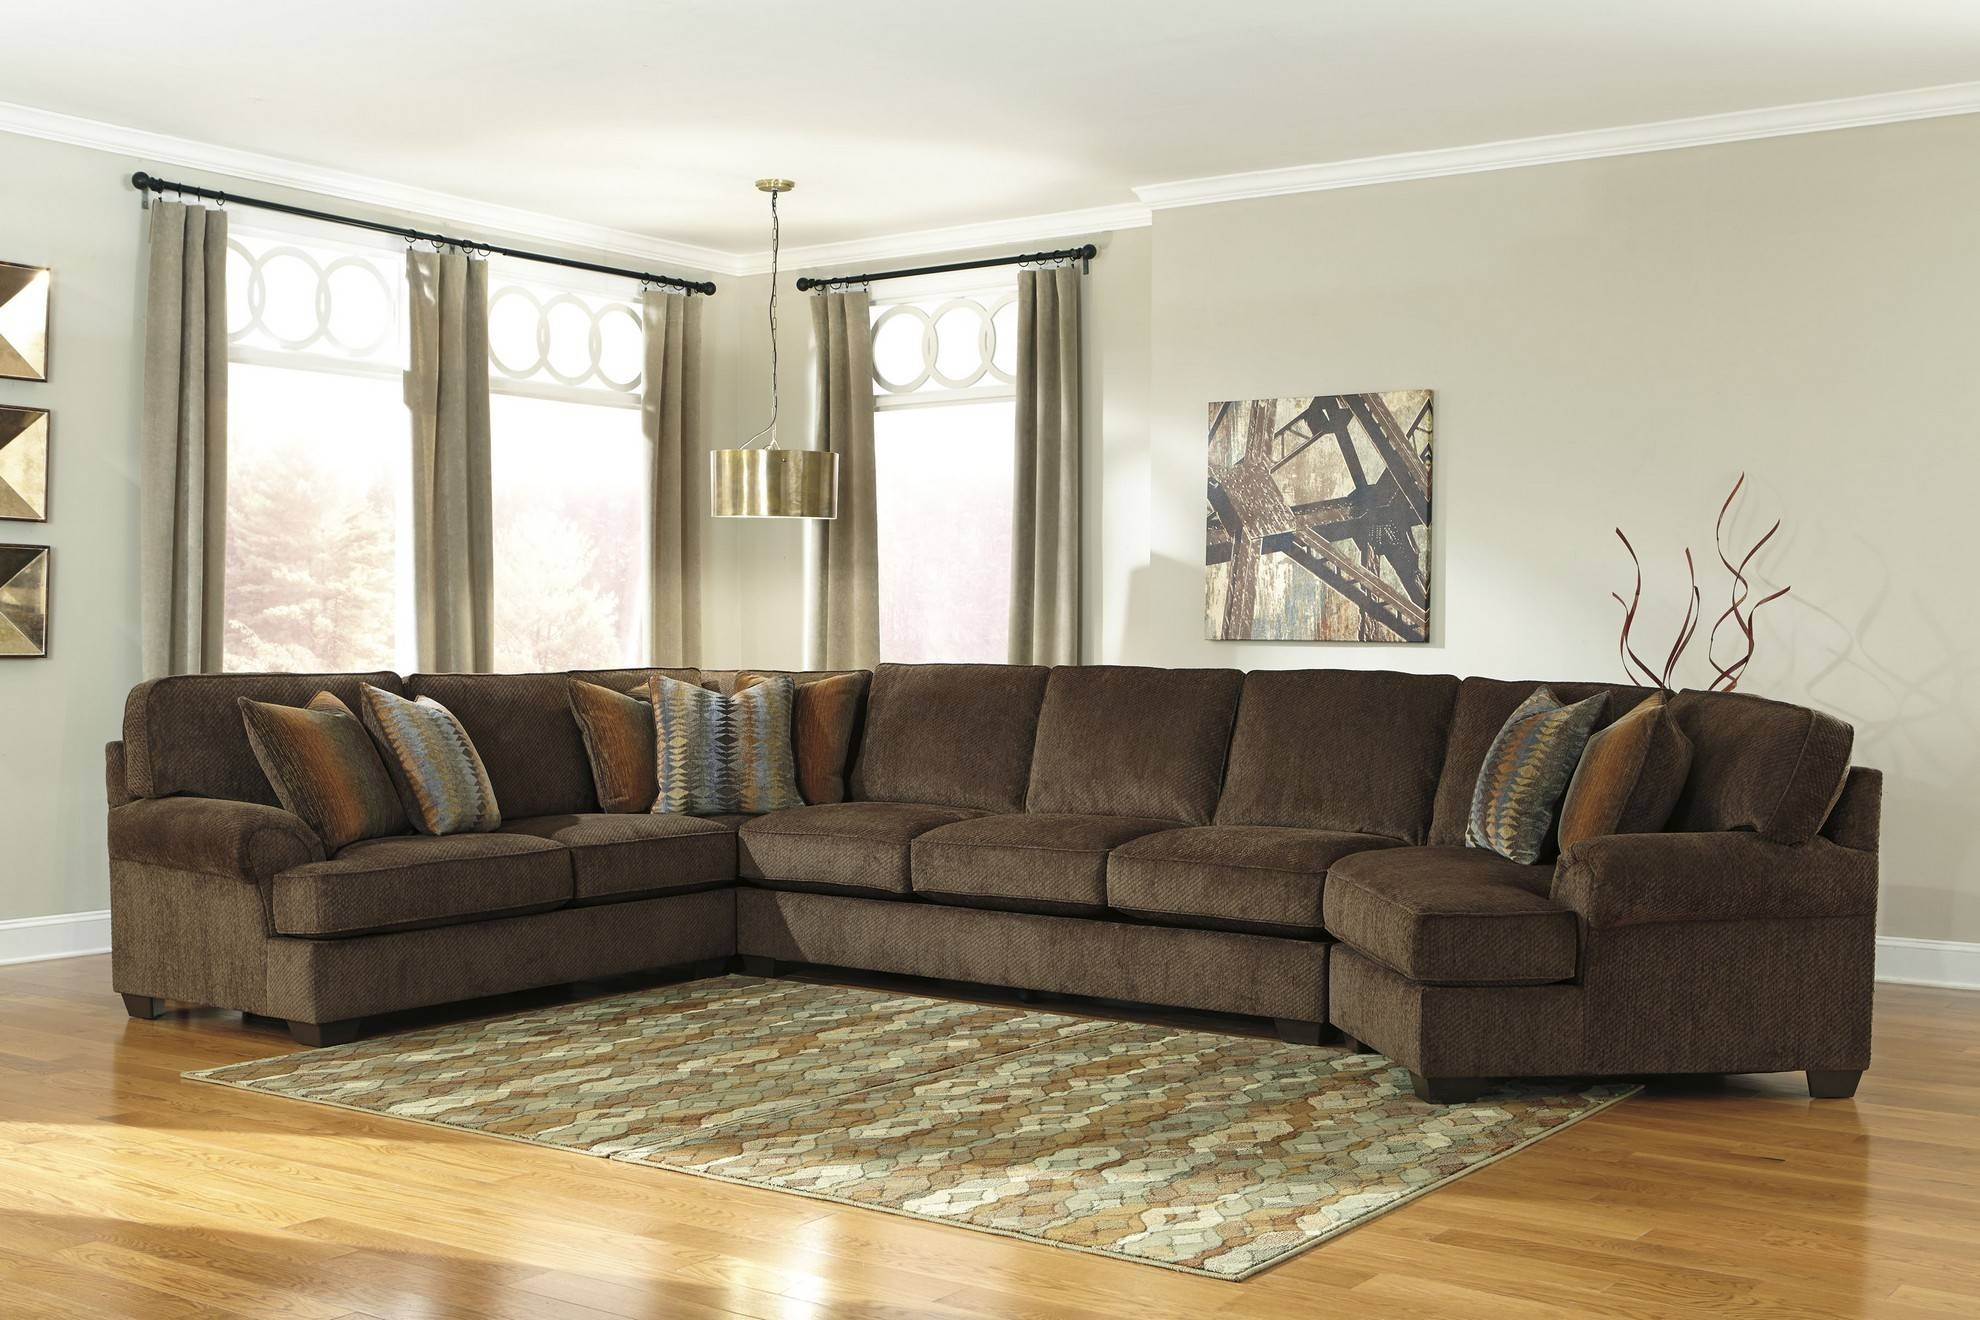 Ashley Furniture Sectionals. Ashley Furniture Zavion Sectional In within Ashley Furniture Brown Corduroy Sectional Sofas (Image 4 of 15)